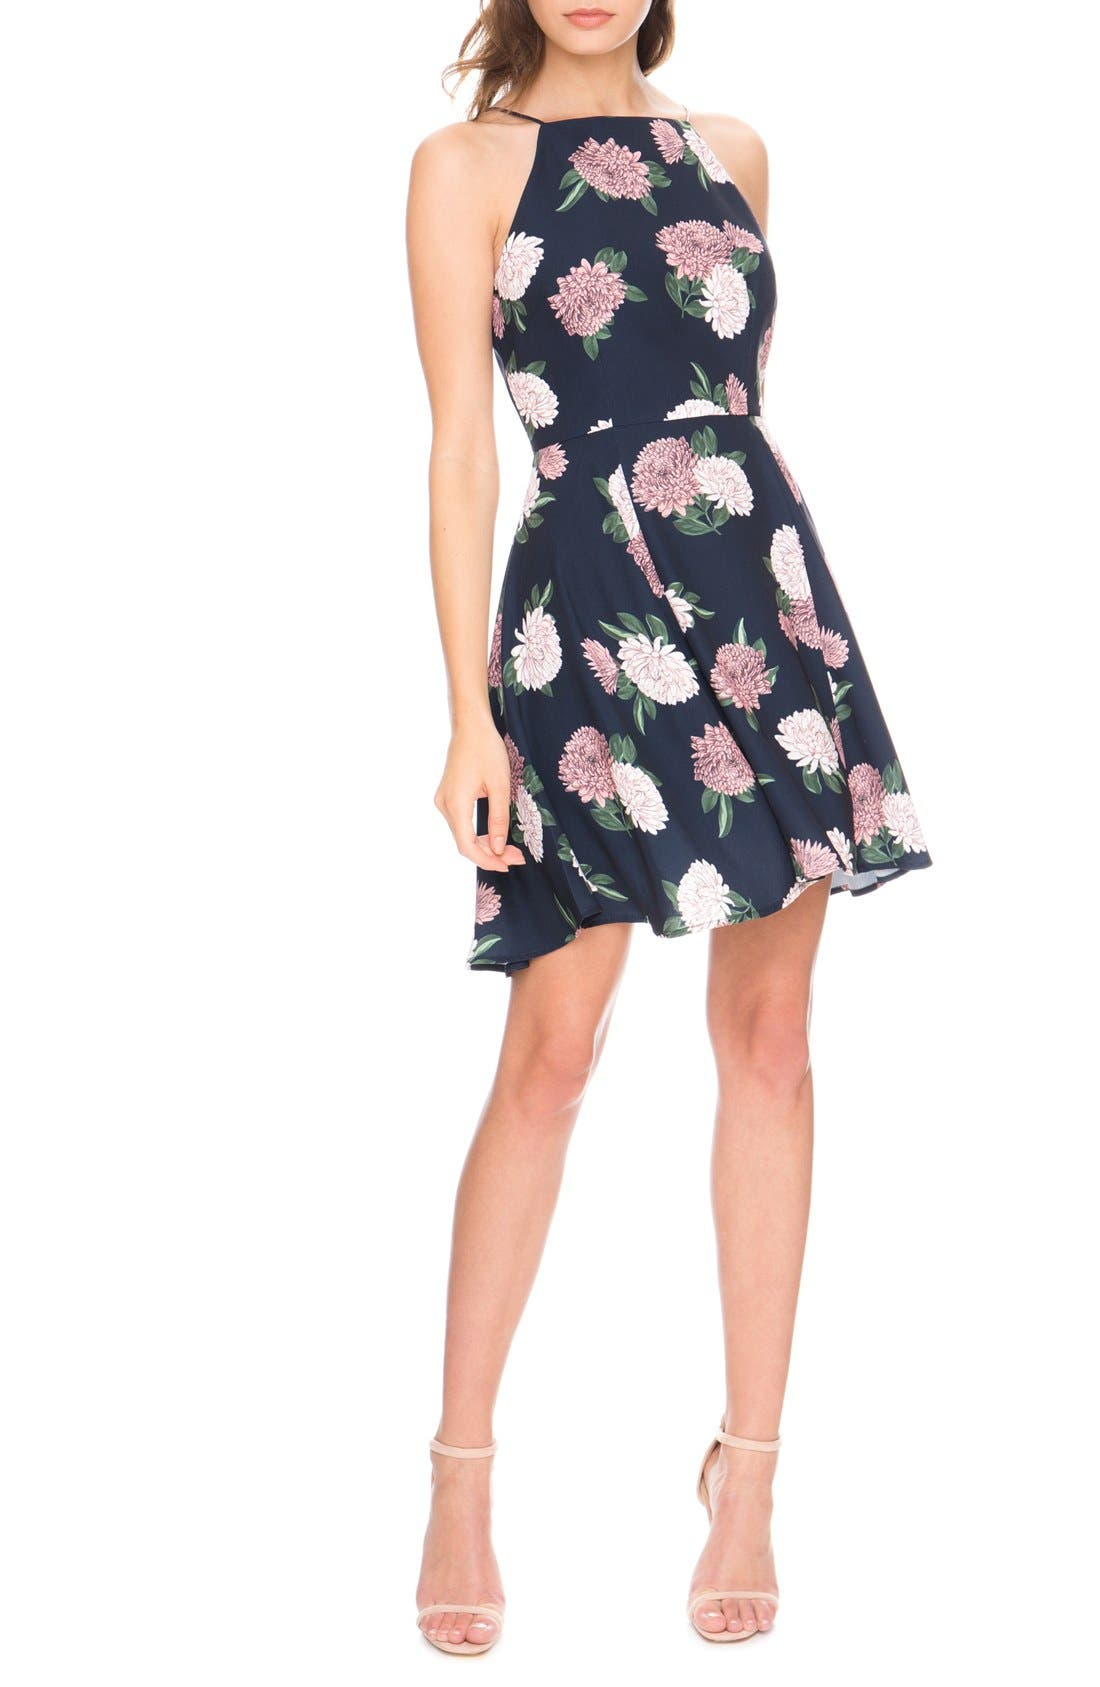 Alternate Image 1 Selected - Keepsake the Label 'Up for Air' Fit & Flare Dress